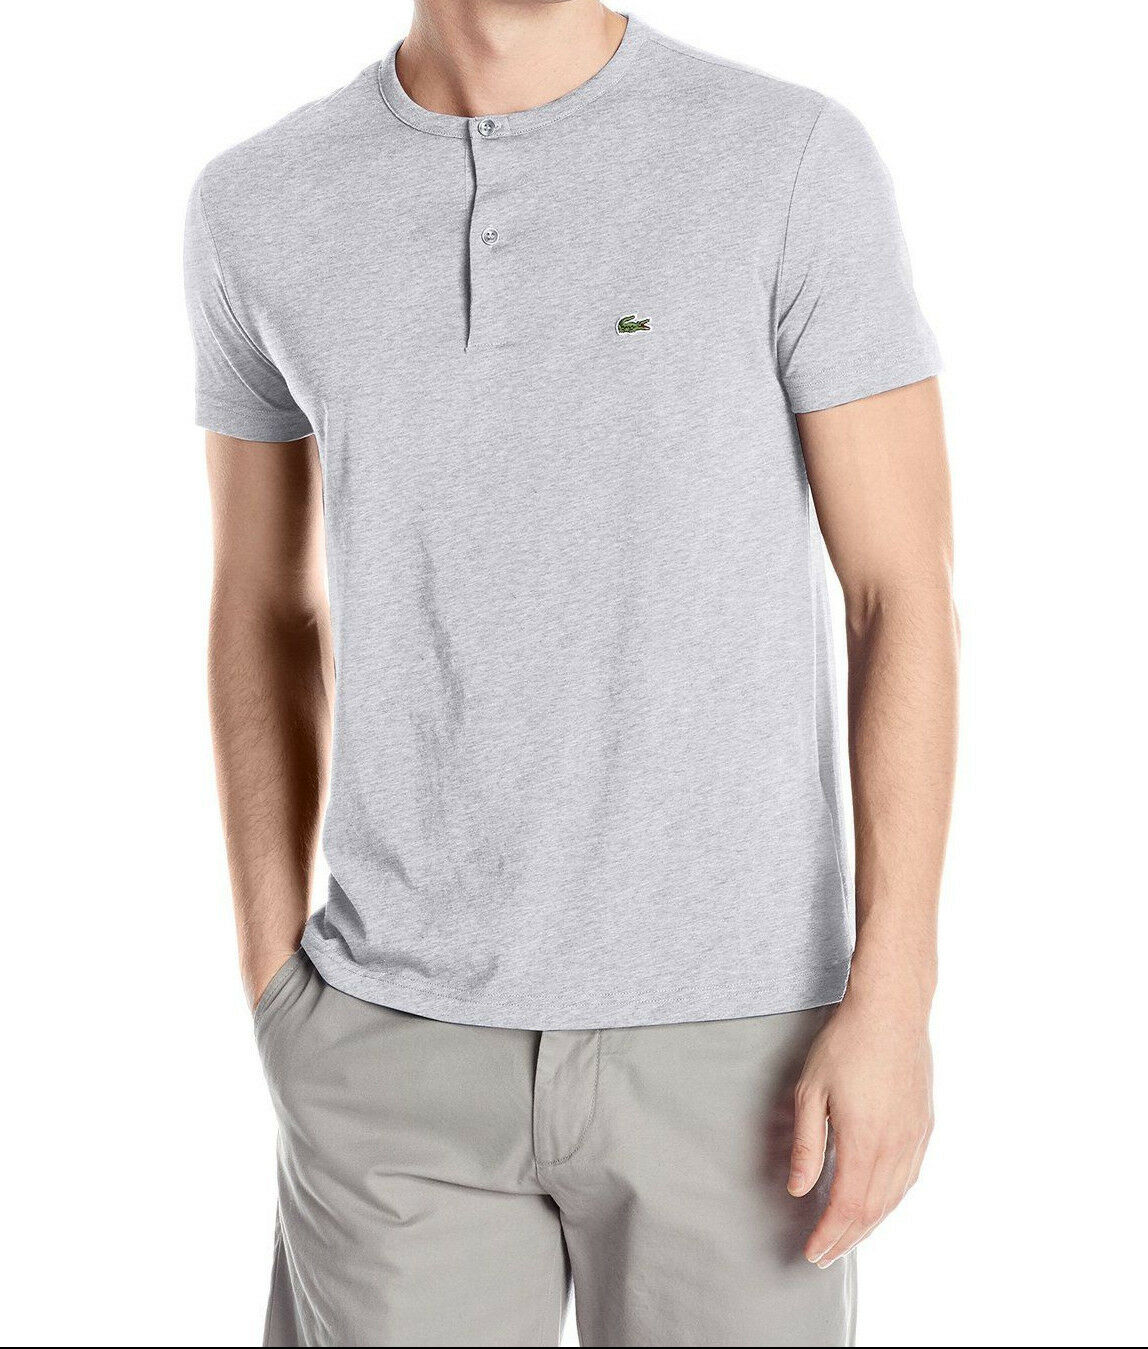 NEW Lacoste T-Shirt grau Henley Shirt 100% Cotton Buttoned Tee Lacoste Th3948